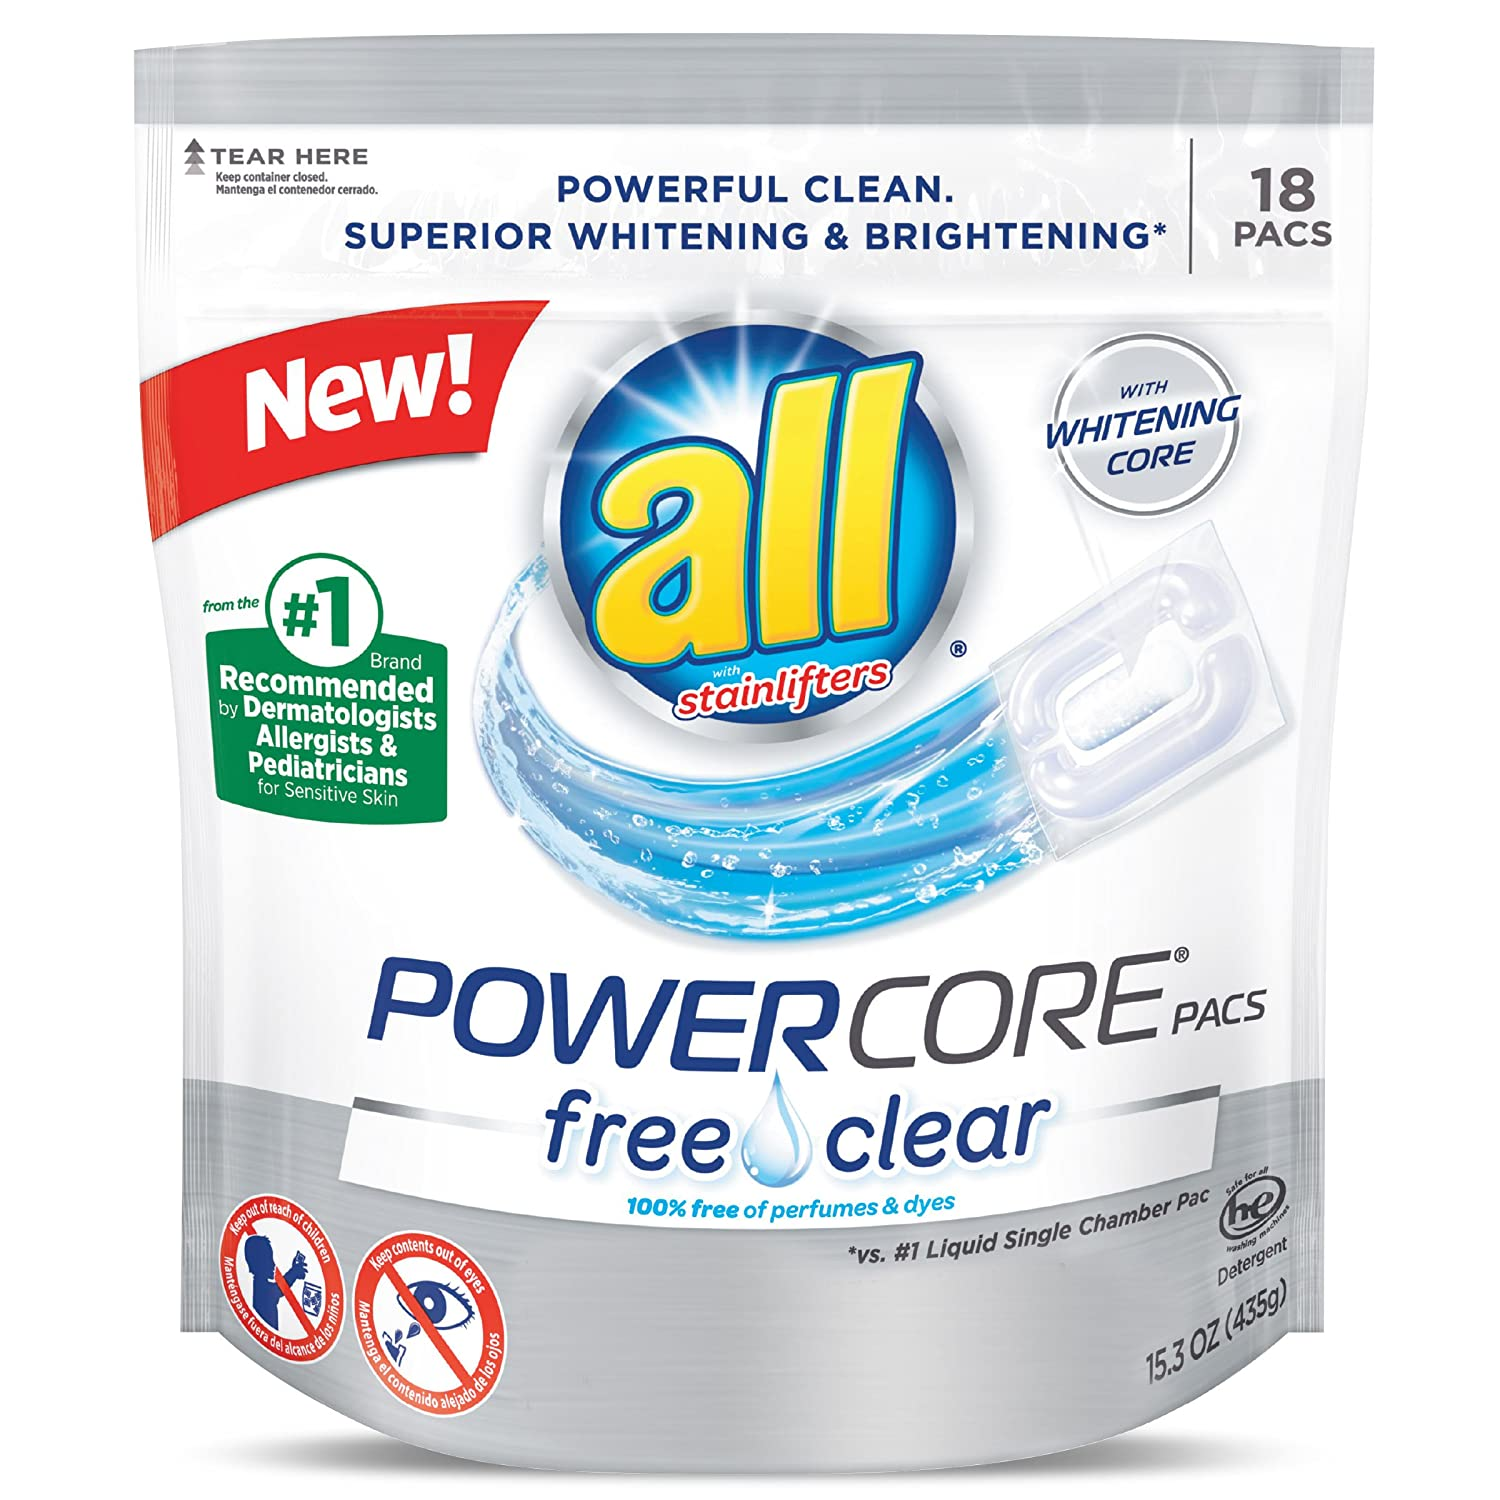 Amazon.com: All Power Core Pacs Laundry Detergent, Free Clear, 18 Count: Health & Personal Care